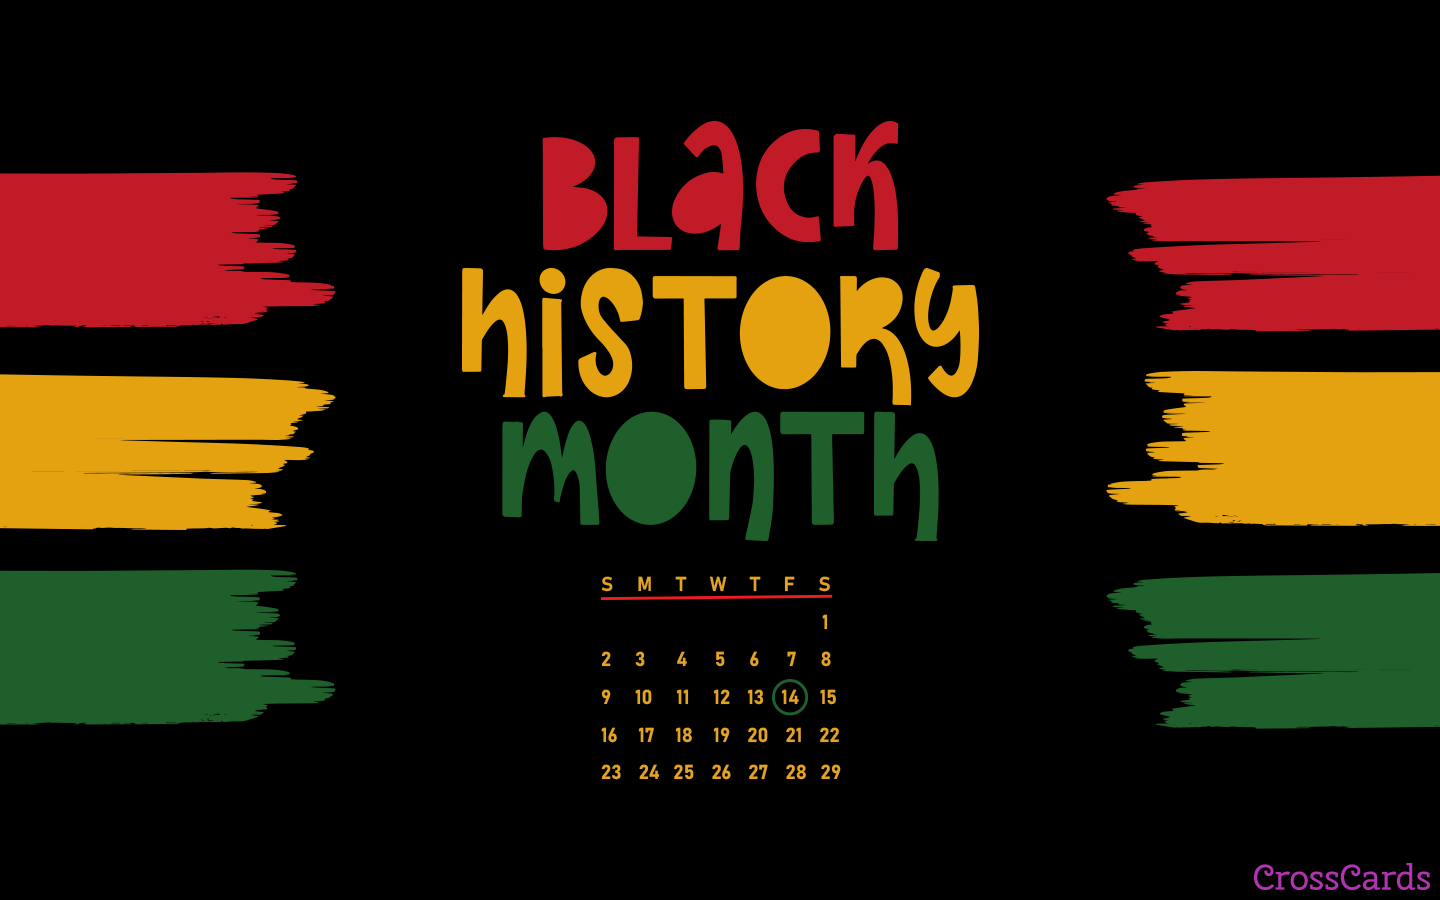 February 2020 - Black History Month mobile phone wallpaper